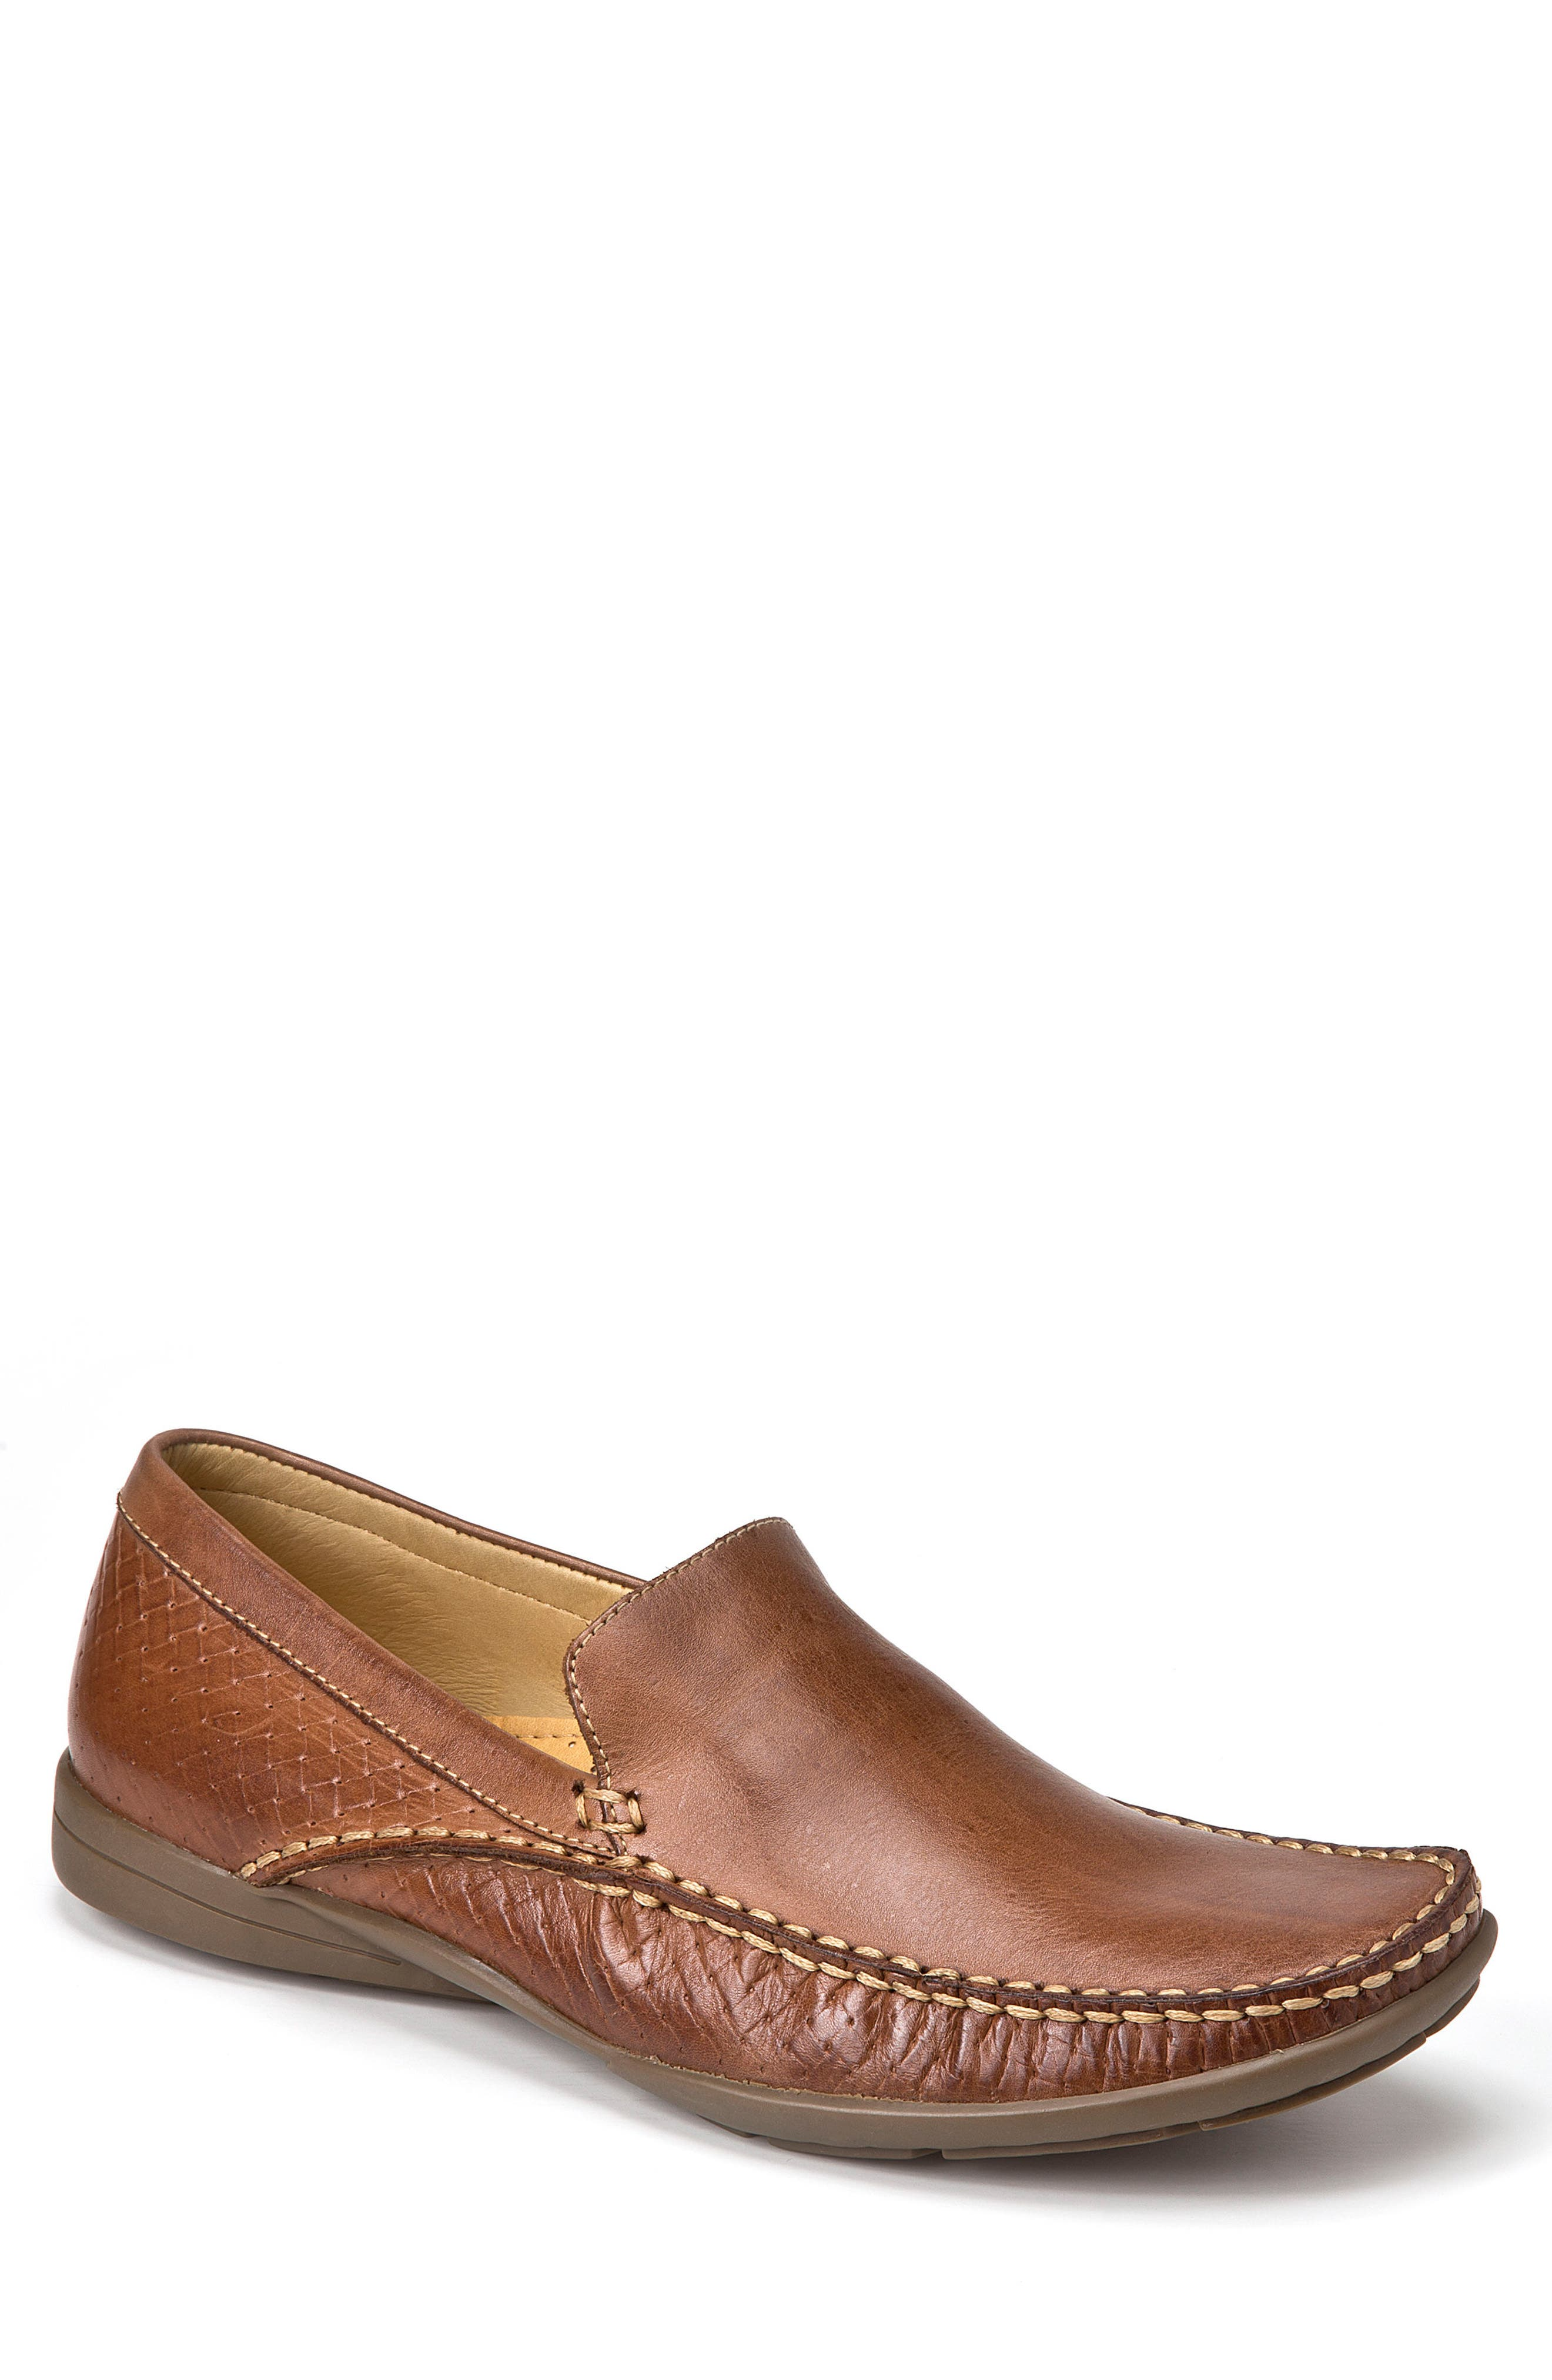 Sandro Moscoloni Dudley Moc Toe Loafer (Men)